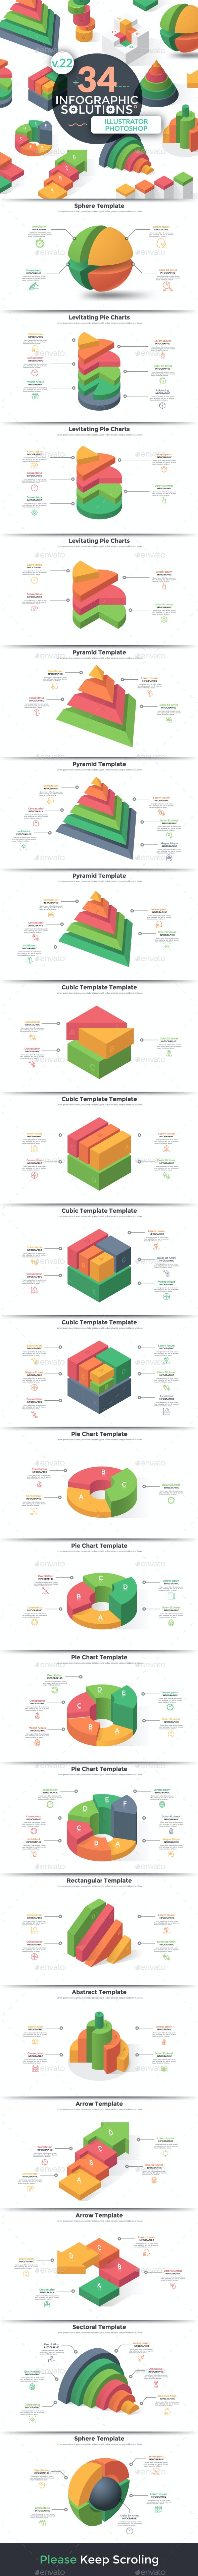 Infographic Solutions. Part 22 - Infographics